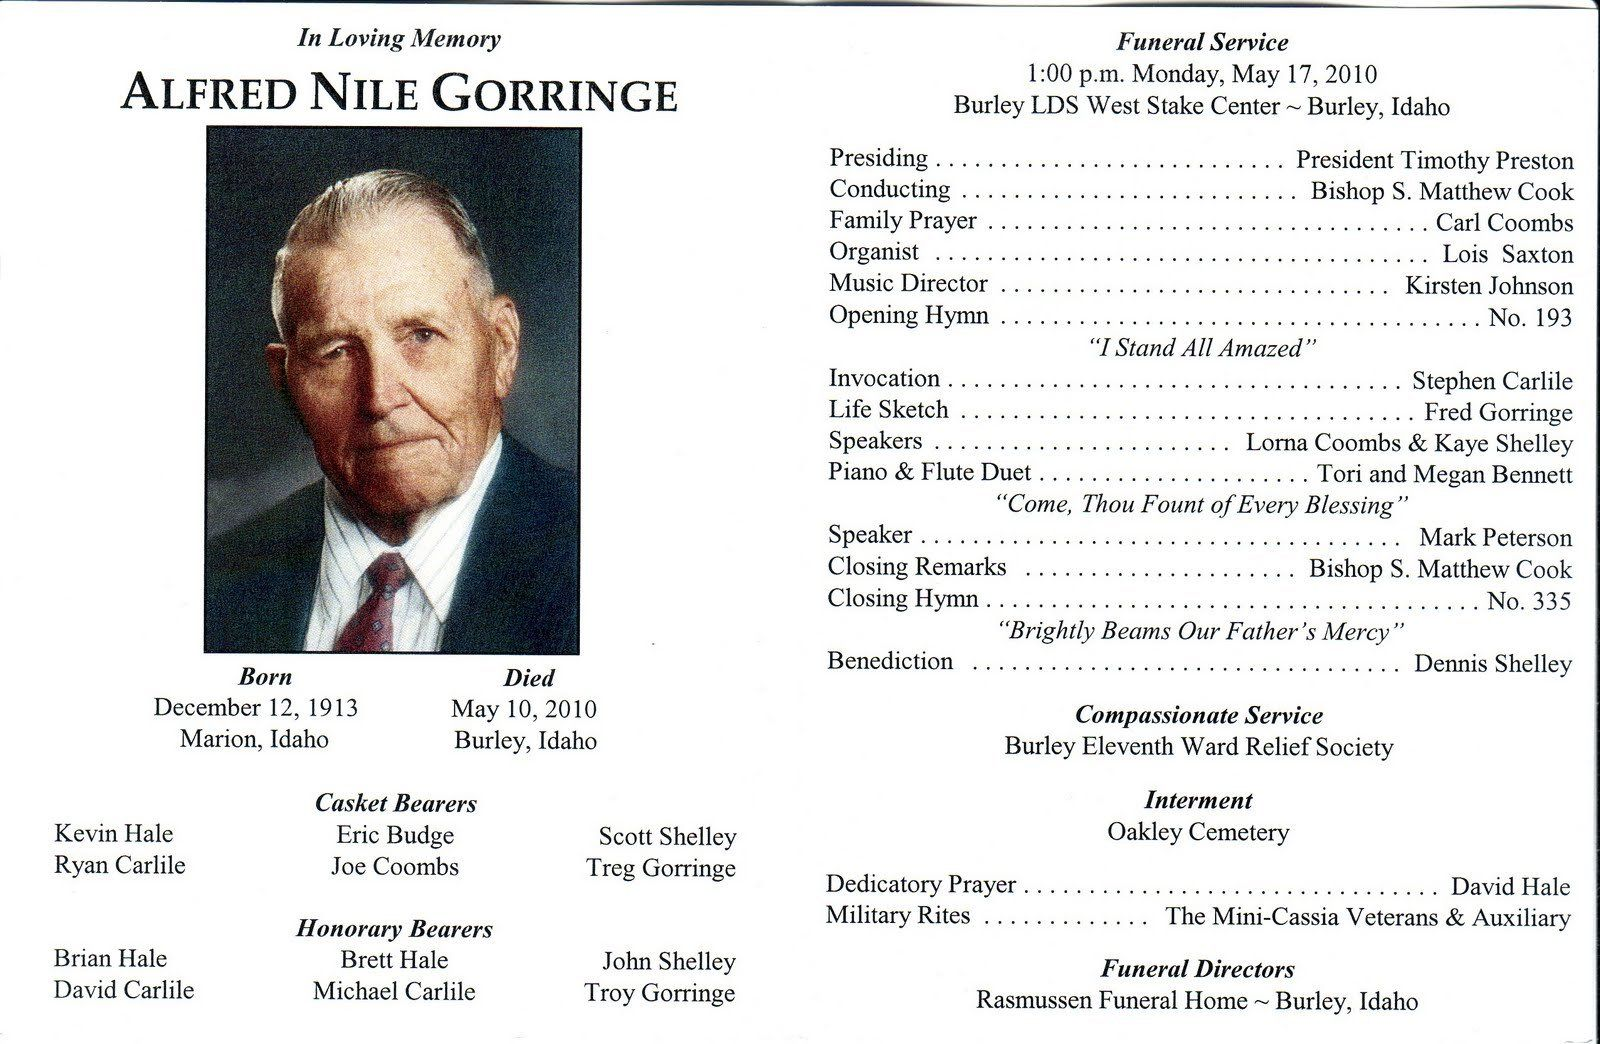 Amazing Memorial Service Programs Sample | LDS Burial And Mormon Funeral Planning  Information  Free Printable Memorial Service Programs